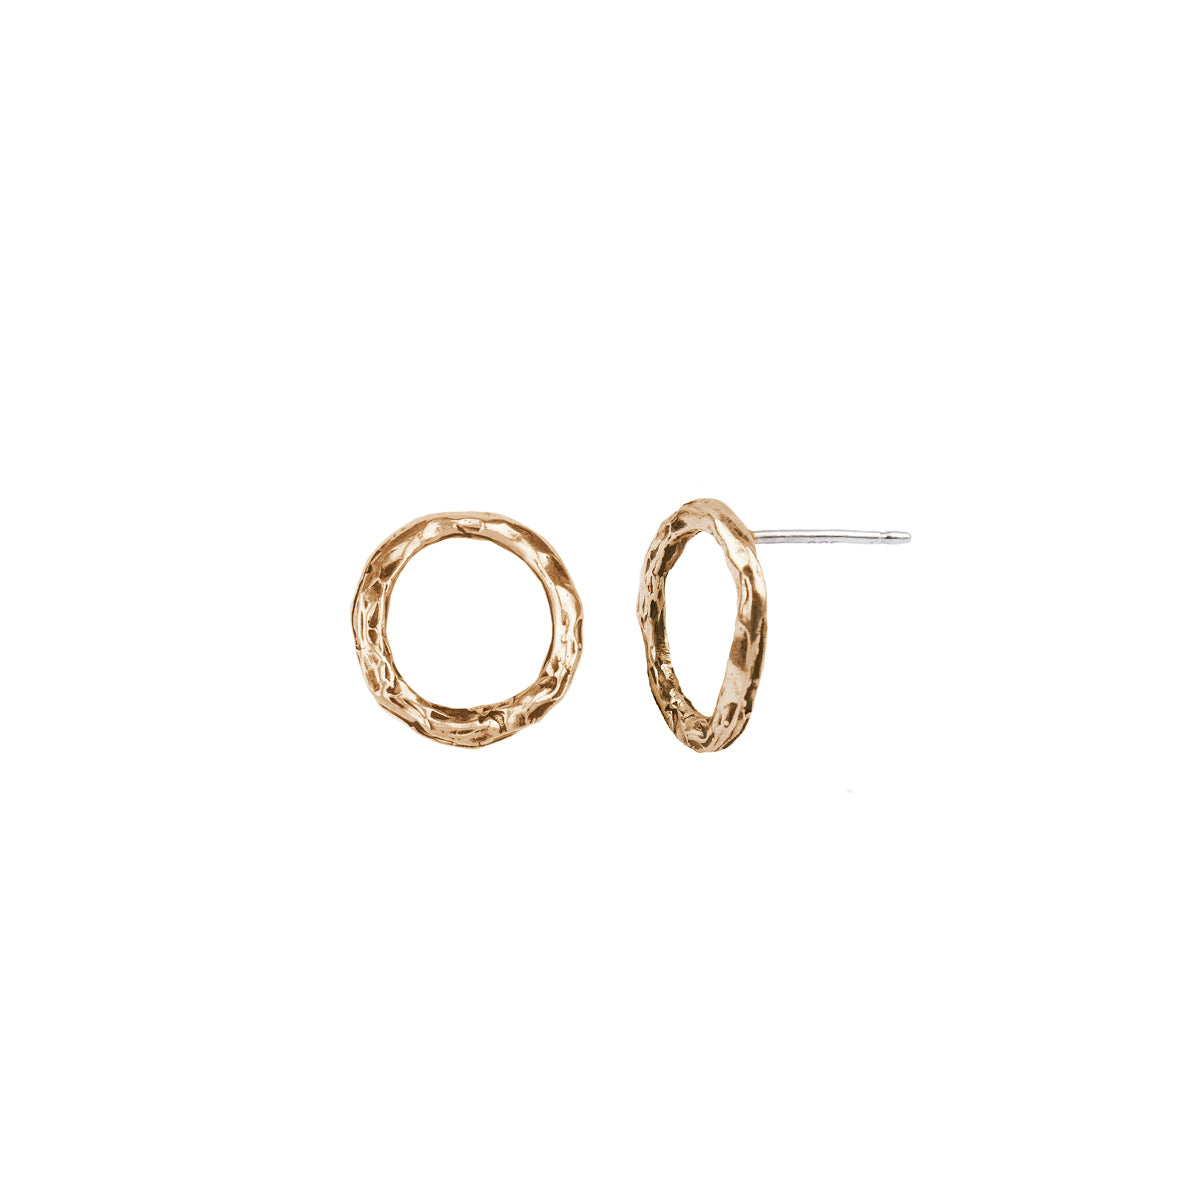 pdp open com bartlett circle at john lewis estella online buyestella main johnlewis rsp stud gold earrings